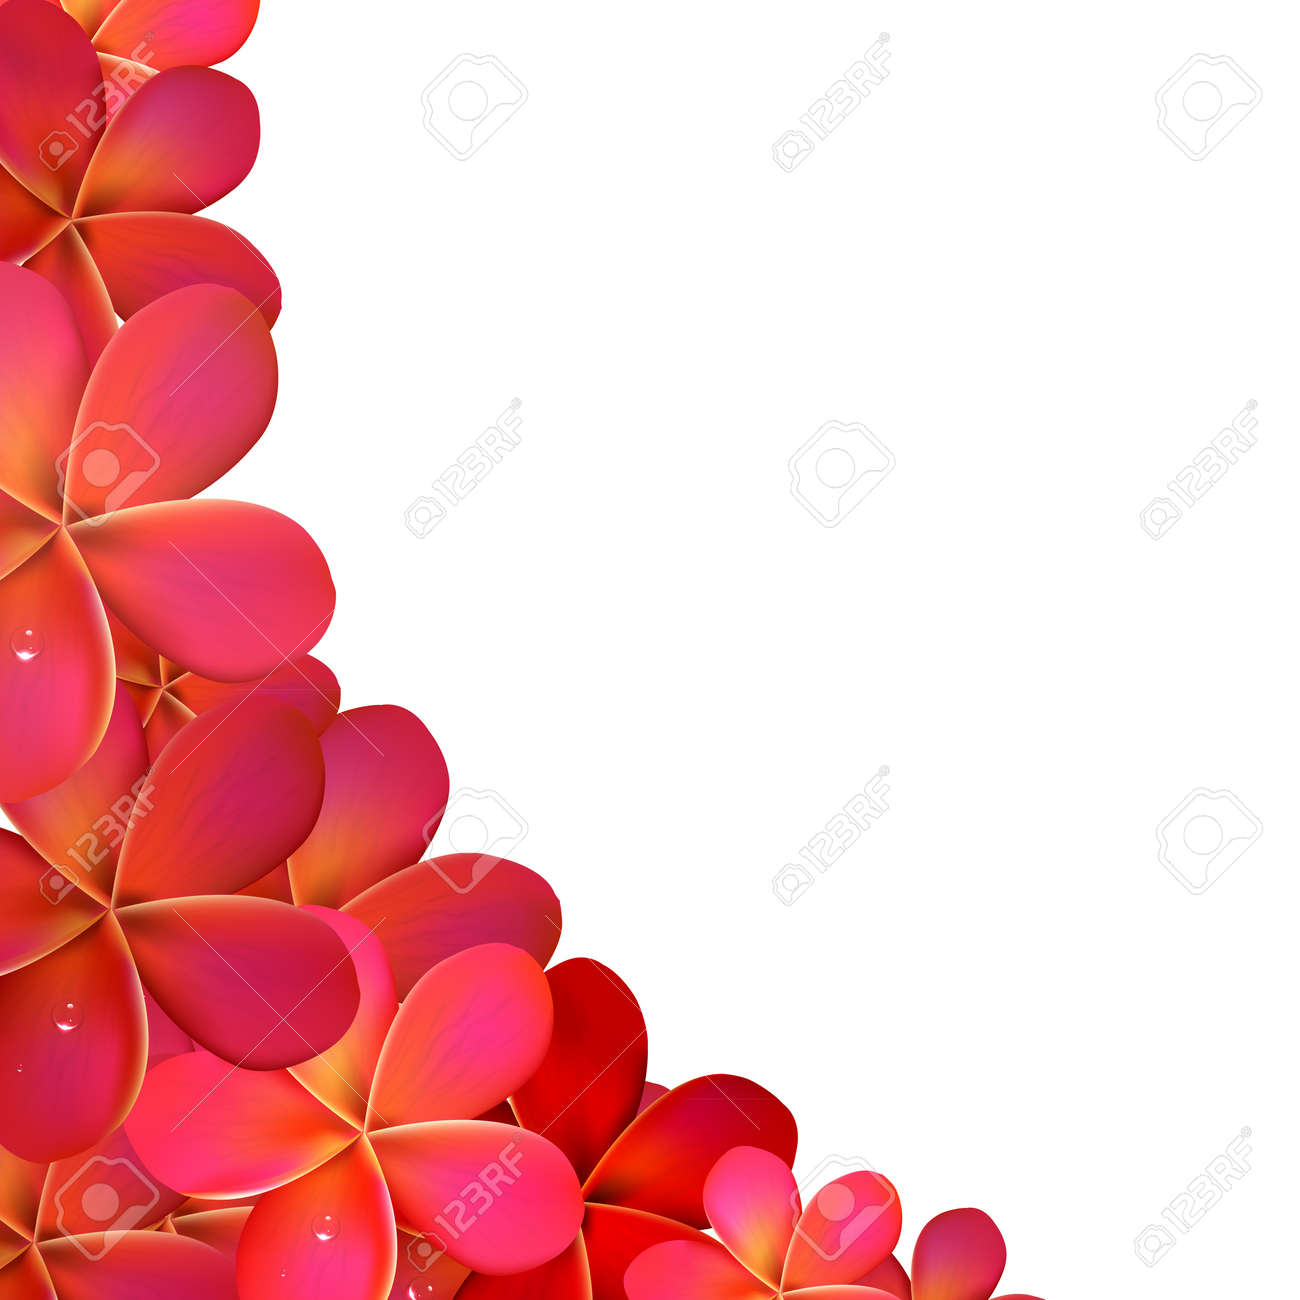 Frangipani Frame With Water Drops Stock Vector - 15710665